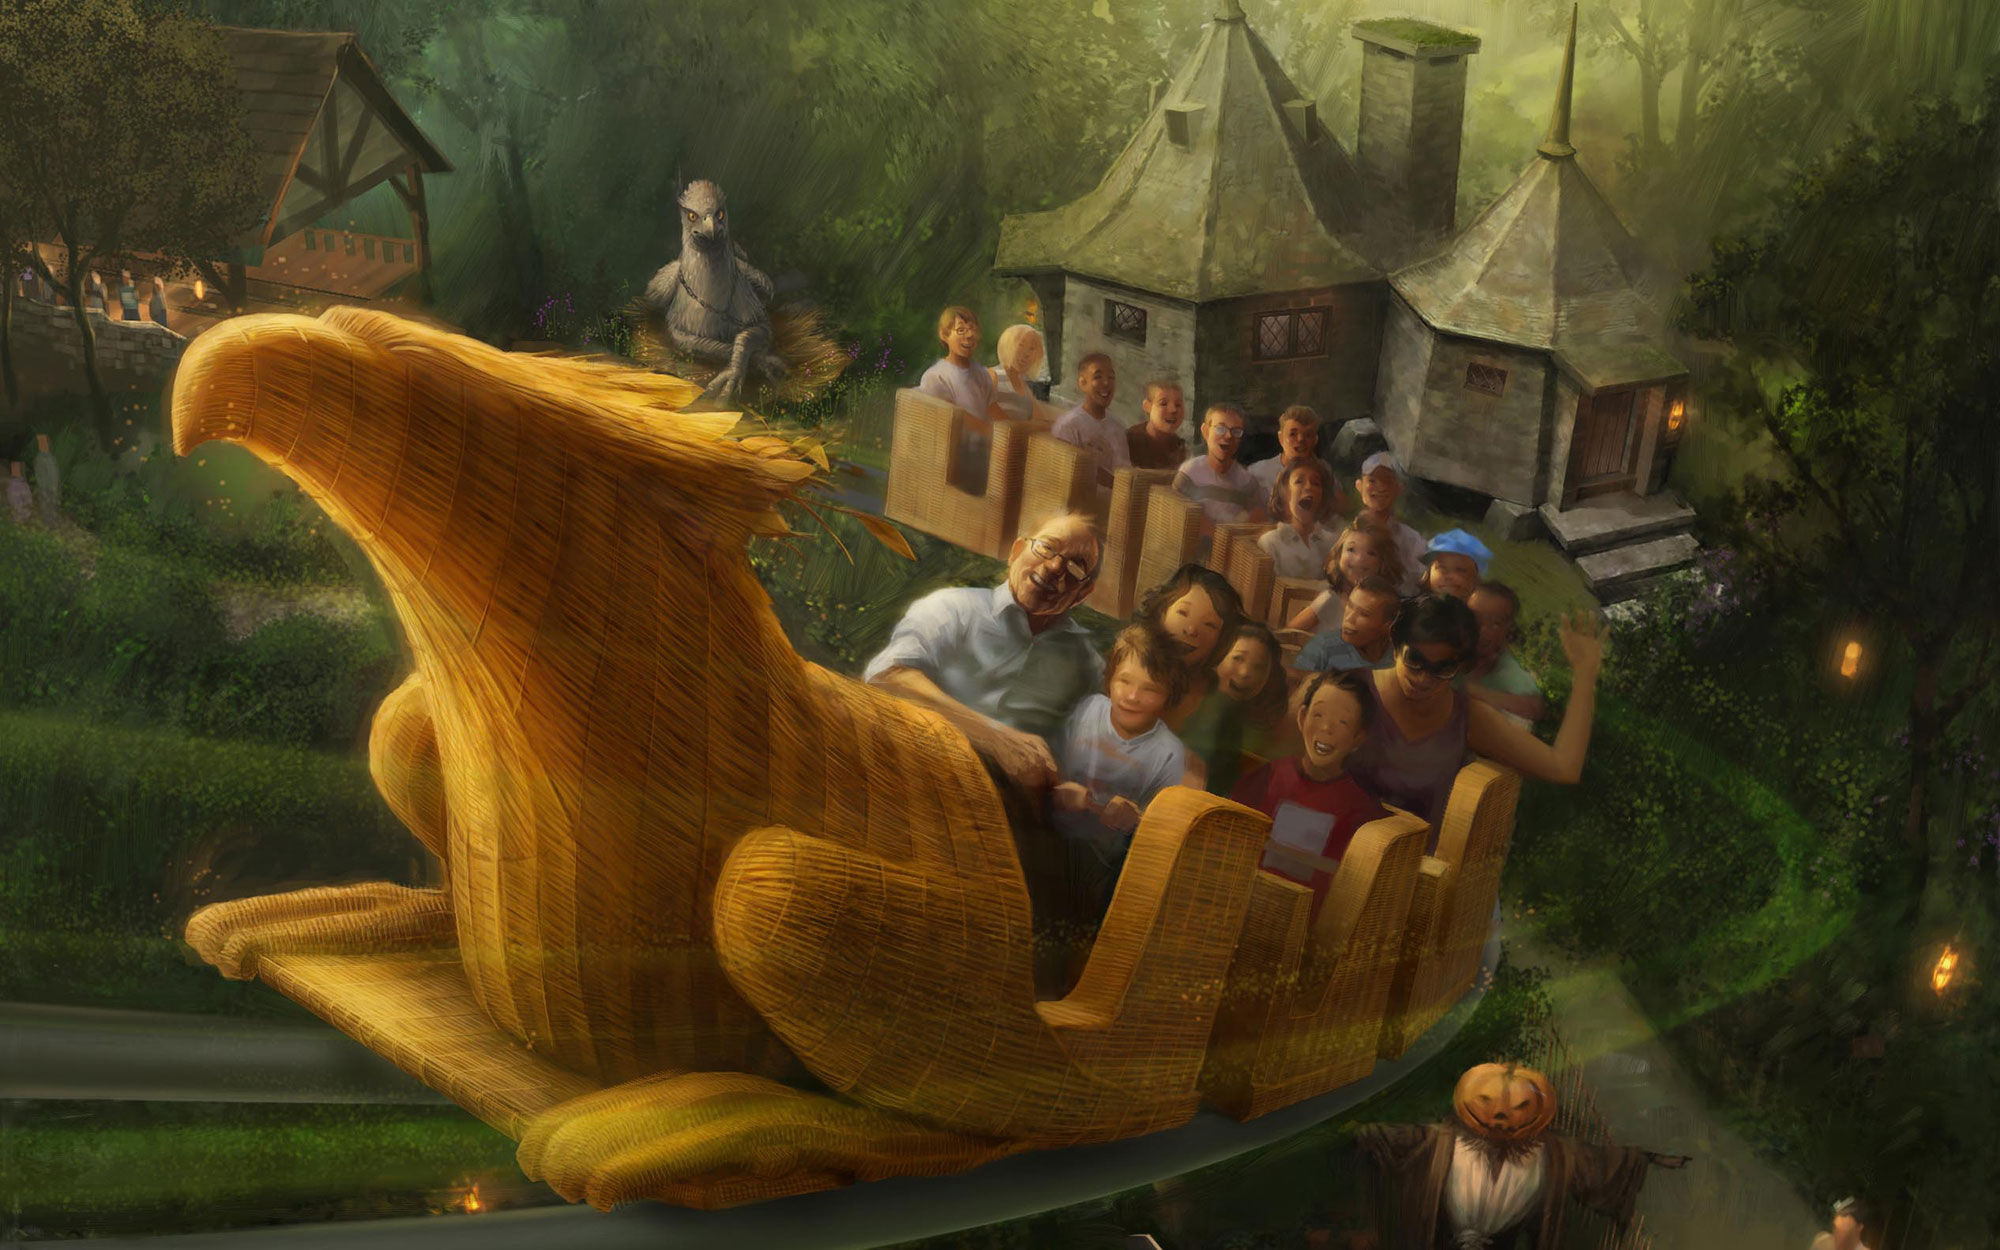 """The Wizarding World of Harry Potter"" at Universal Studios Hollywood - Flight of the Hippogriff concept rendering"